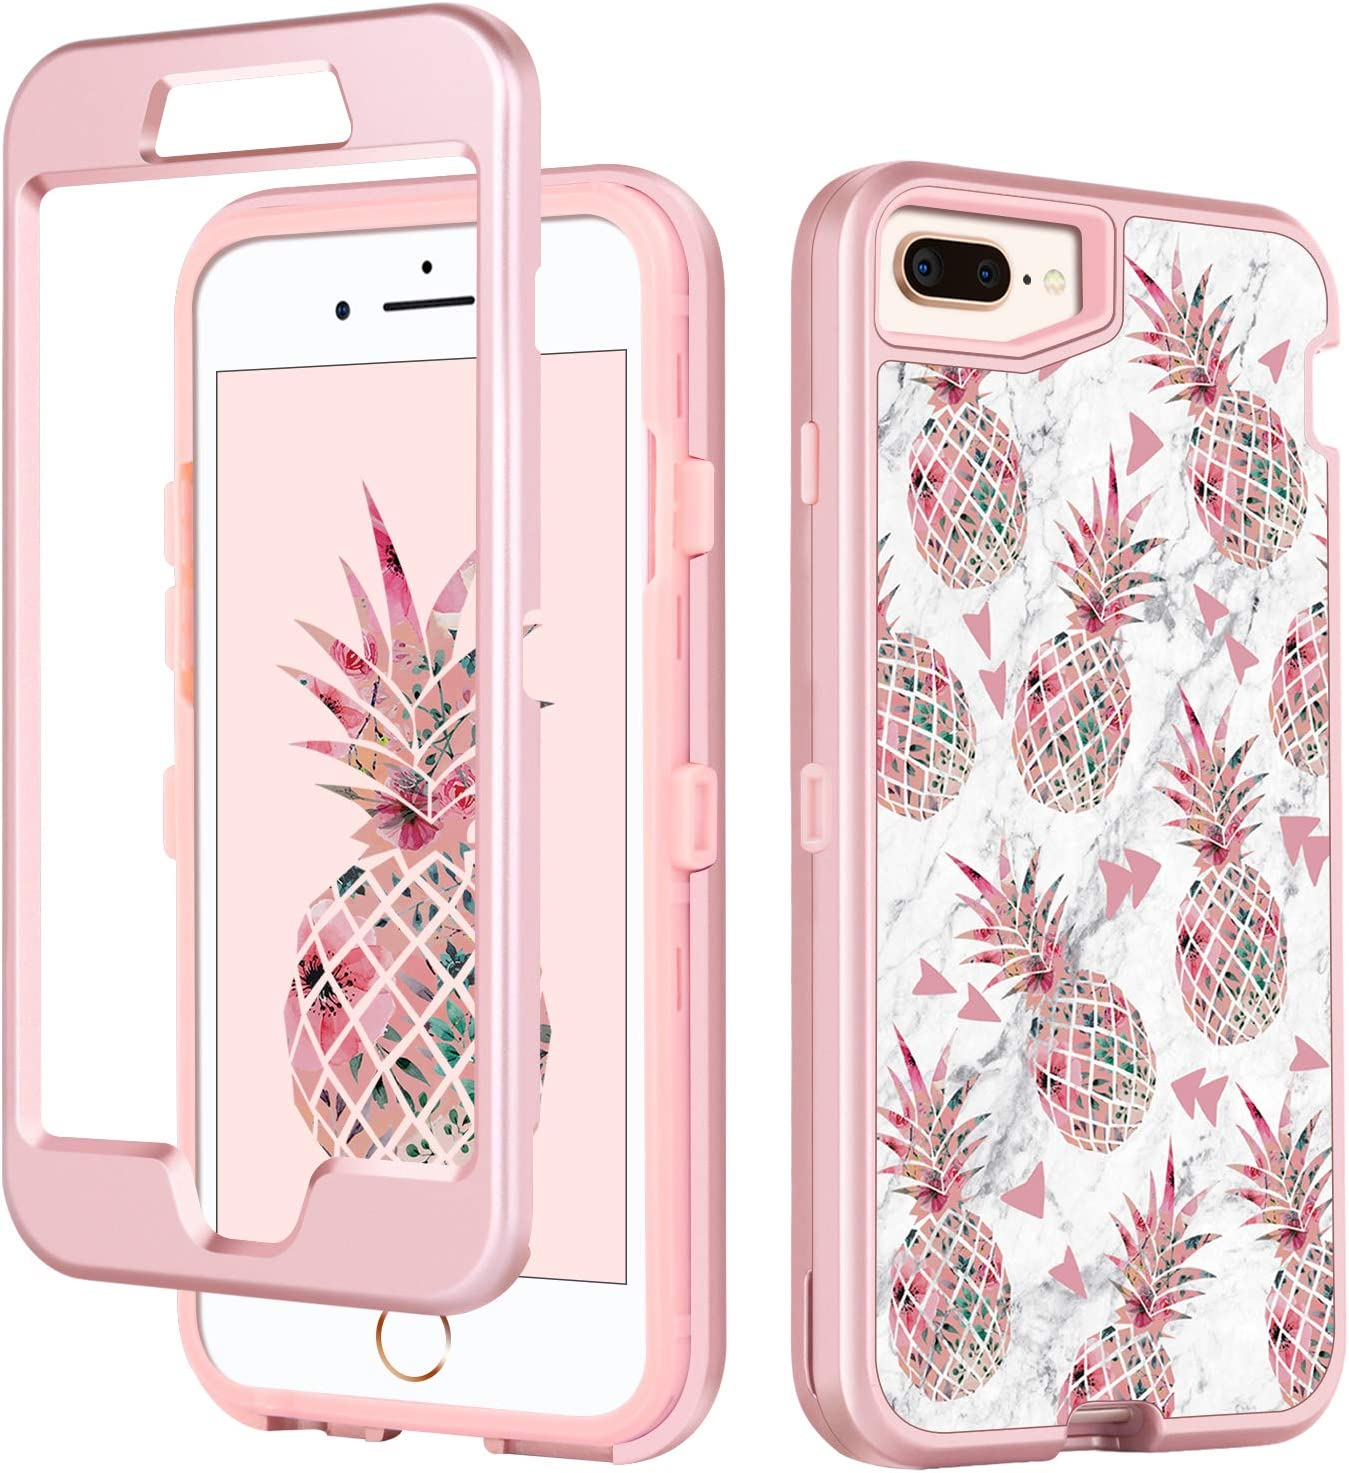 iPhone 6s Plus Case iPhone 6 Plus Case Pineapple for Girl Women, GUAGUA Marble Glossy Cover Hybrid 3 in 1 Hard PC Soft Bumper Shockproof Protective Phone Case for iPhone 6S Plus/6 Plus,Rose Gold